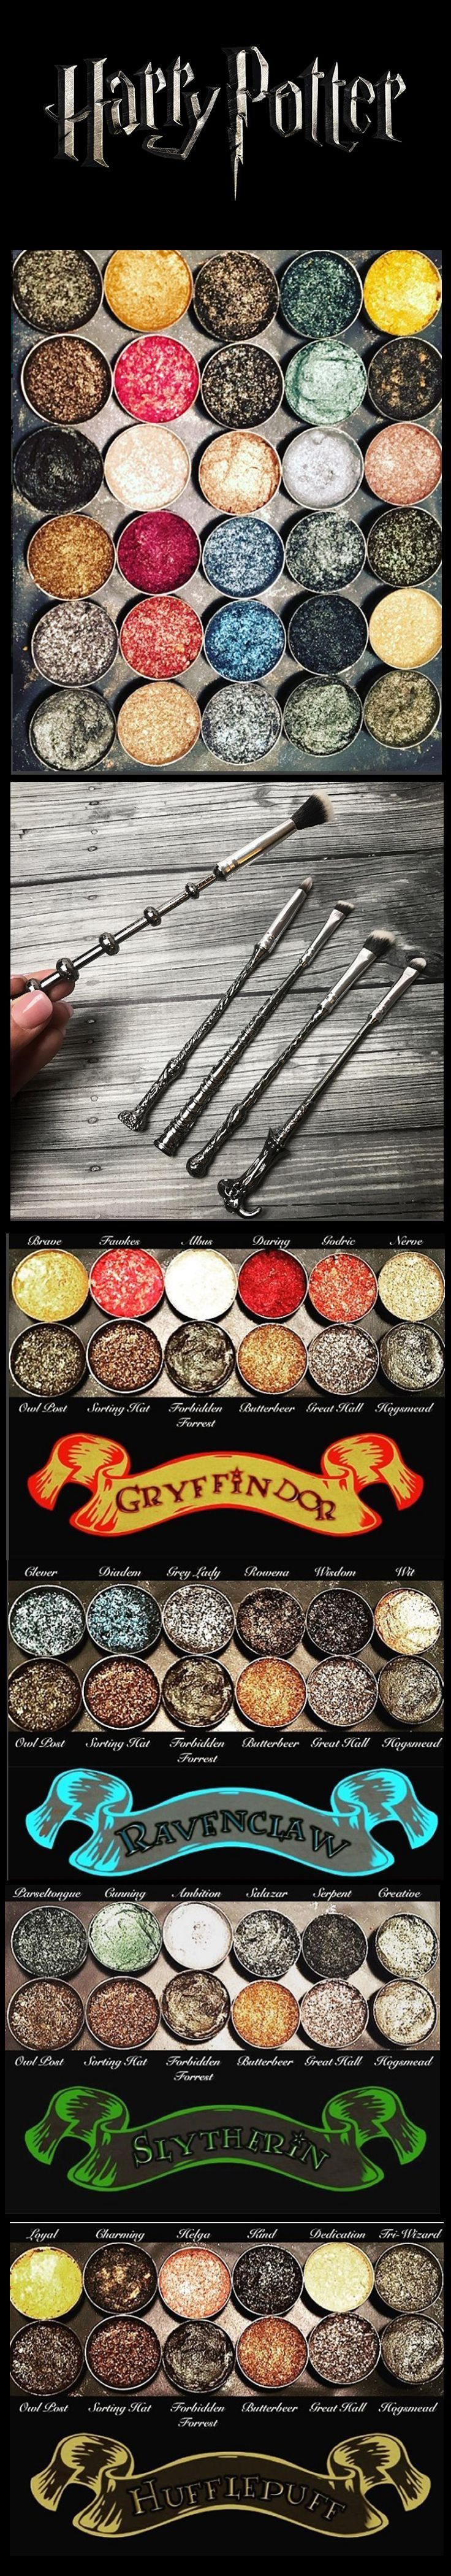 Harry Potter Makeup Brushes and eyeshadow palettes www.glowcultcosmetics.com